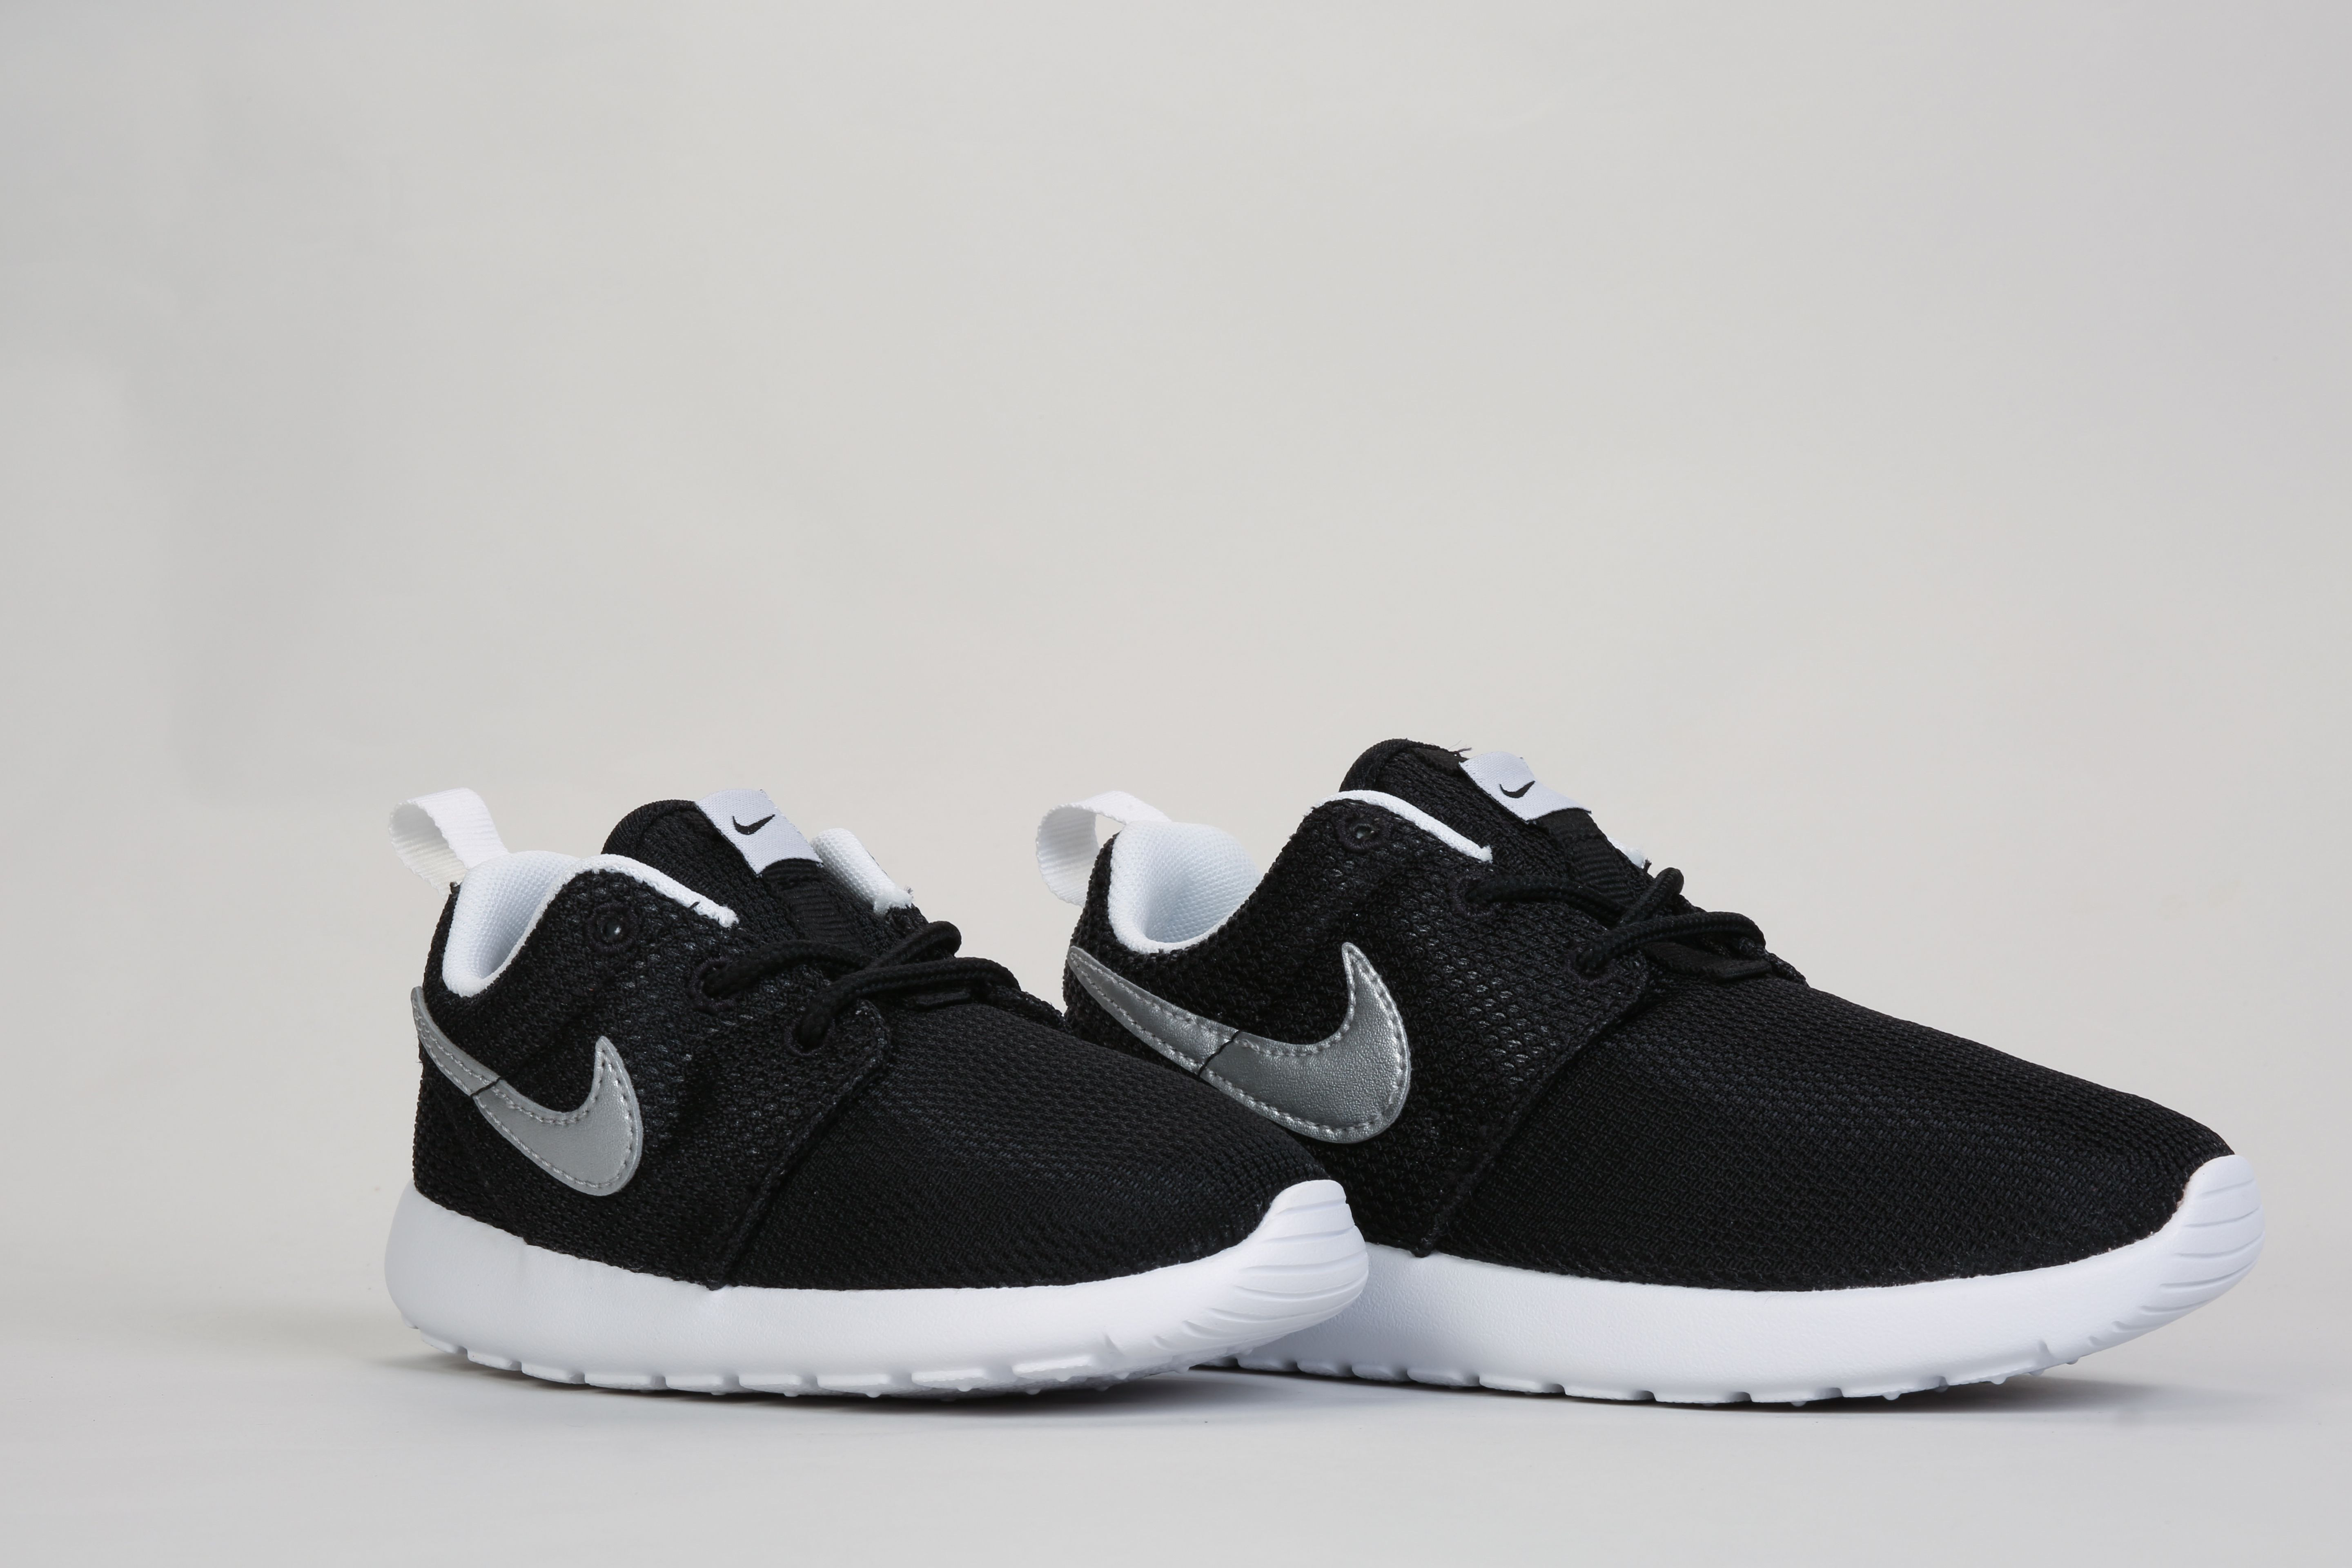 reputable site 0fc67 32368 Nike Roshes - Infant Junior